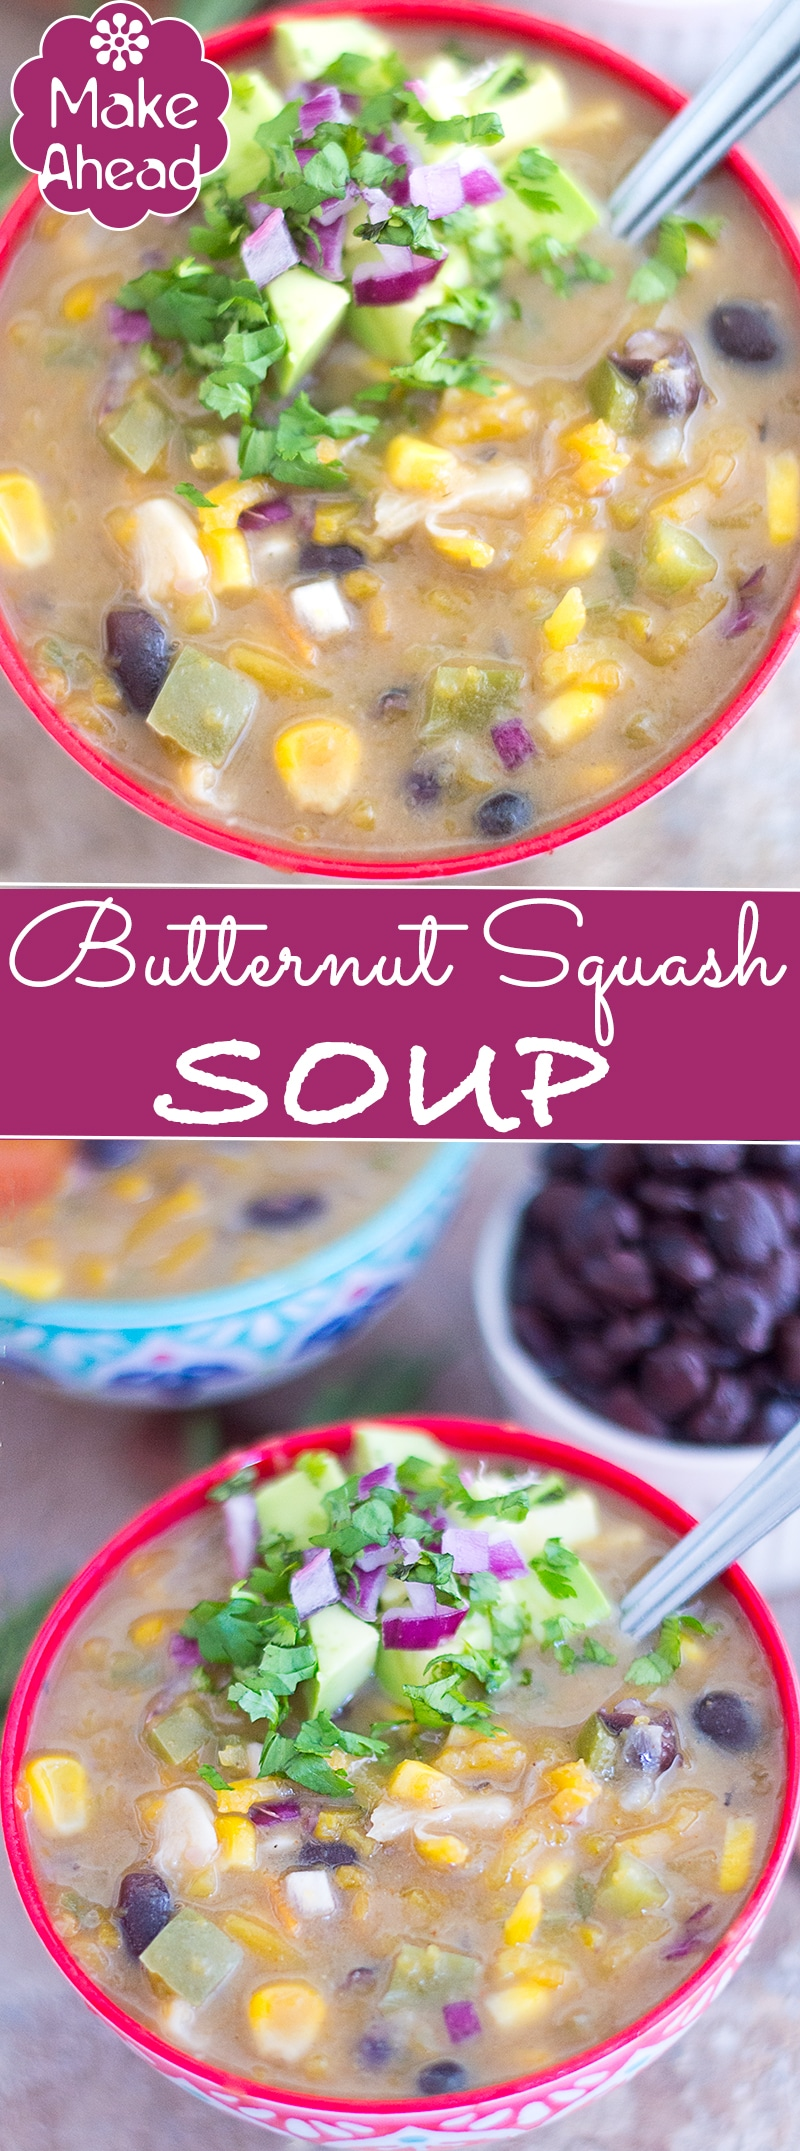 Make-ahead butternut squash soup with Southwestern Flavors. Used butternut squash zoodles, black beans, corn, onions and spices to make this perfect winter soup. Freeze it and use it daily. Will last you the whole week